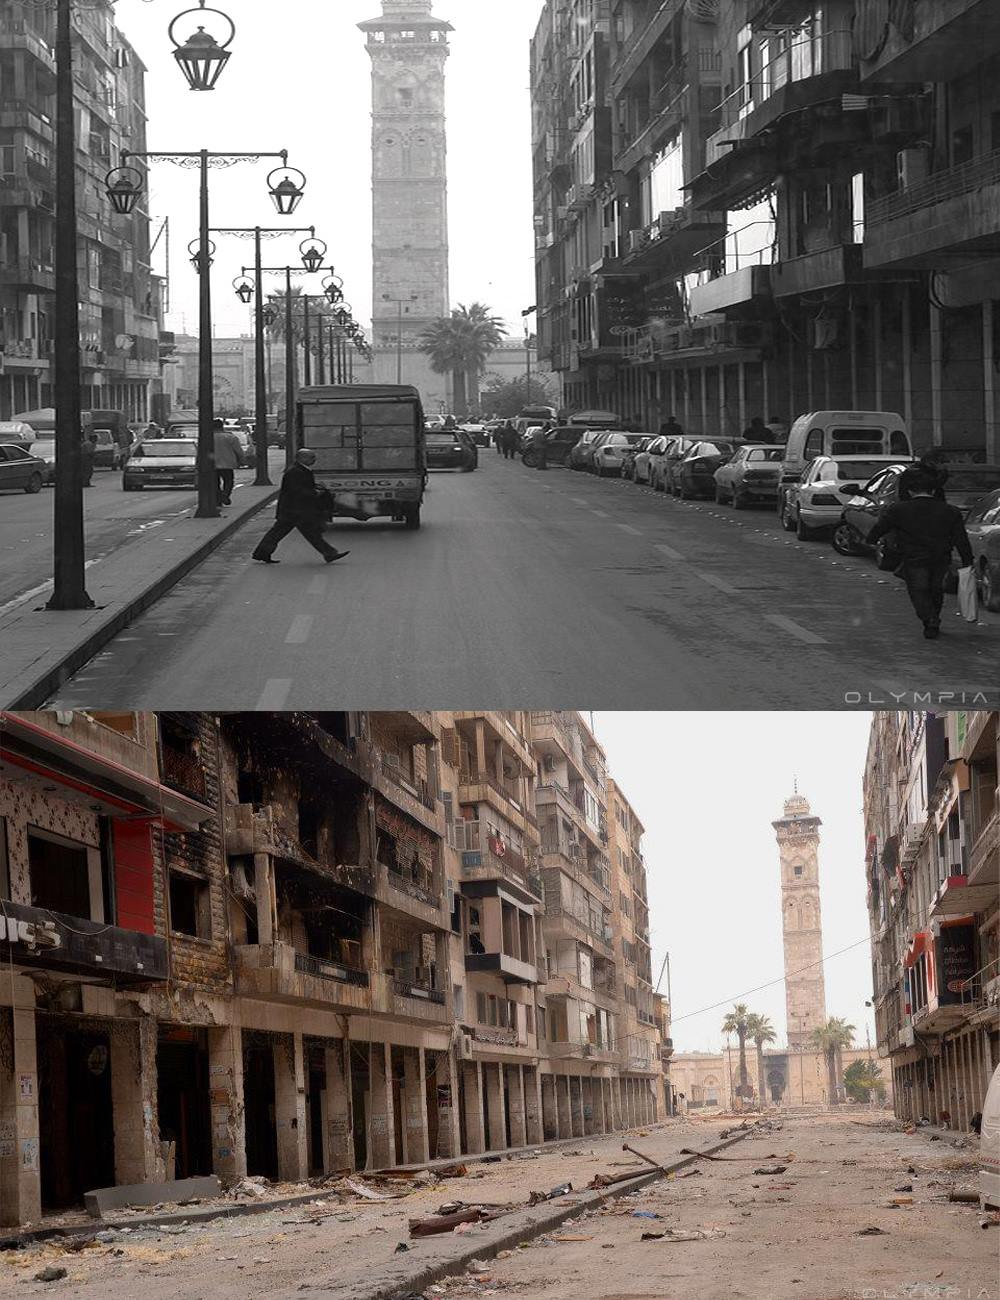 Aleppo: Symbol of Action and Inaction, Aleppo: Symbol of Action and Inaction